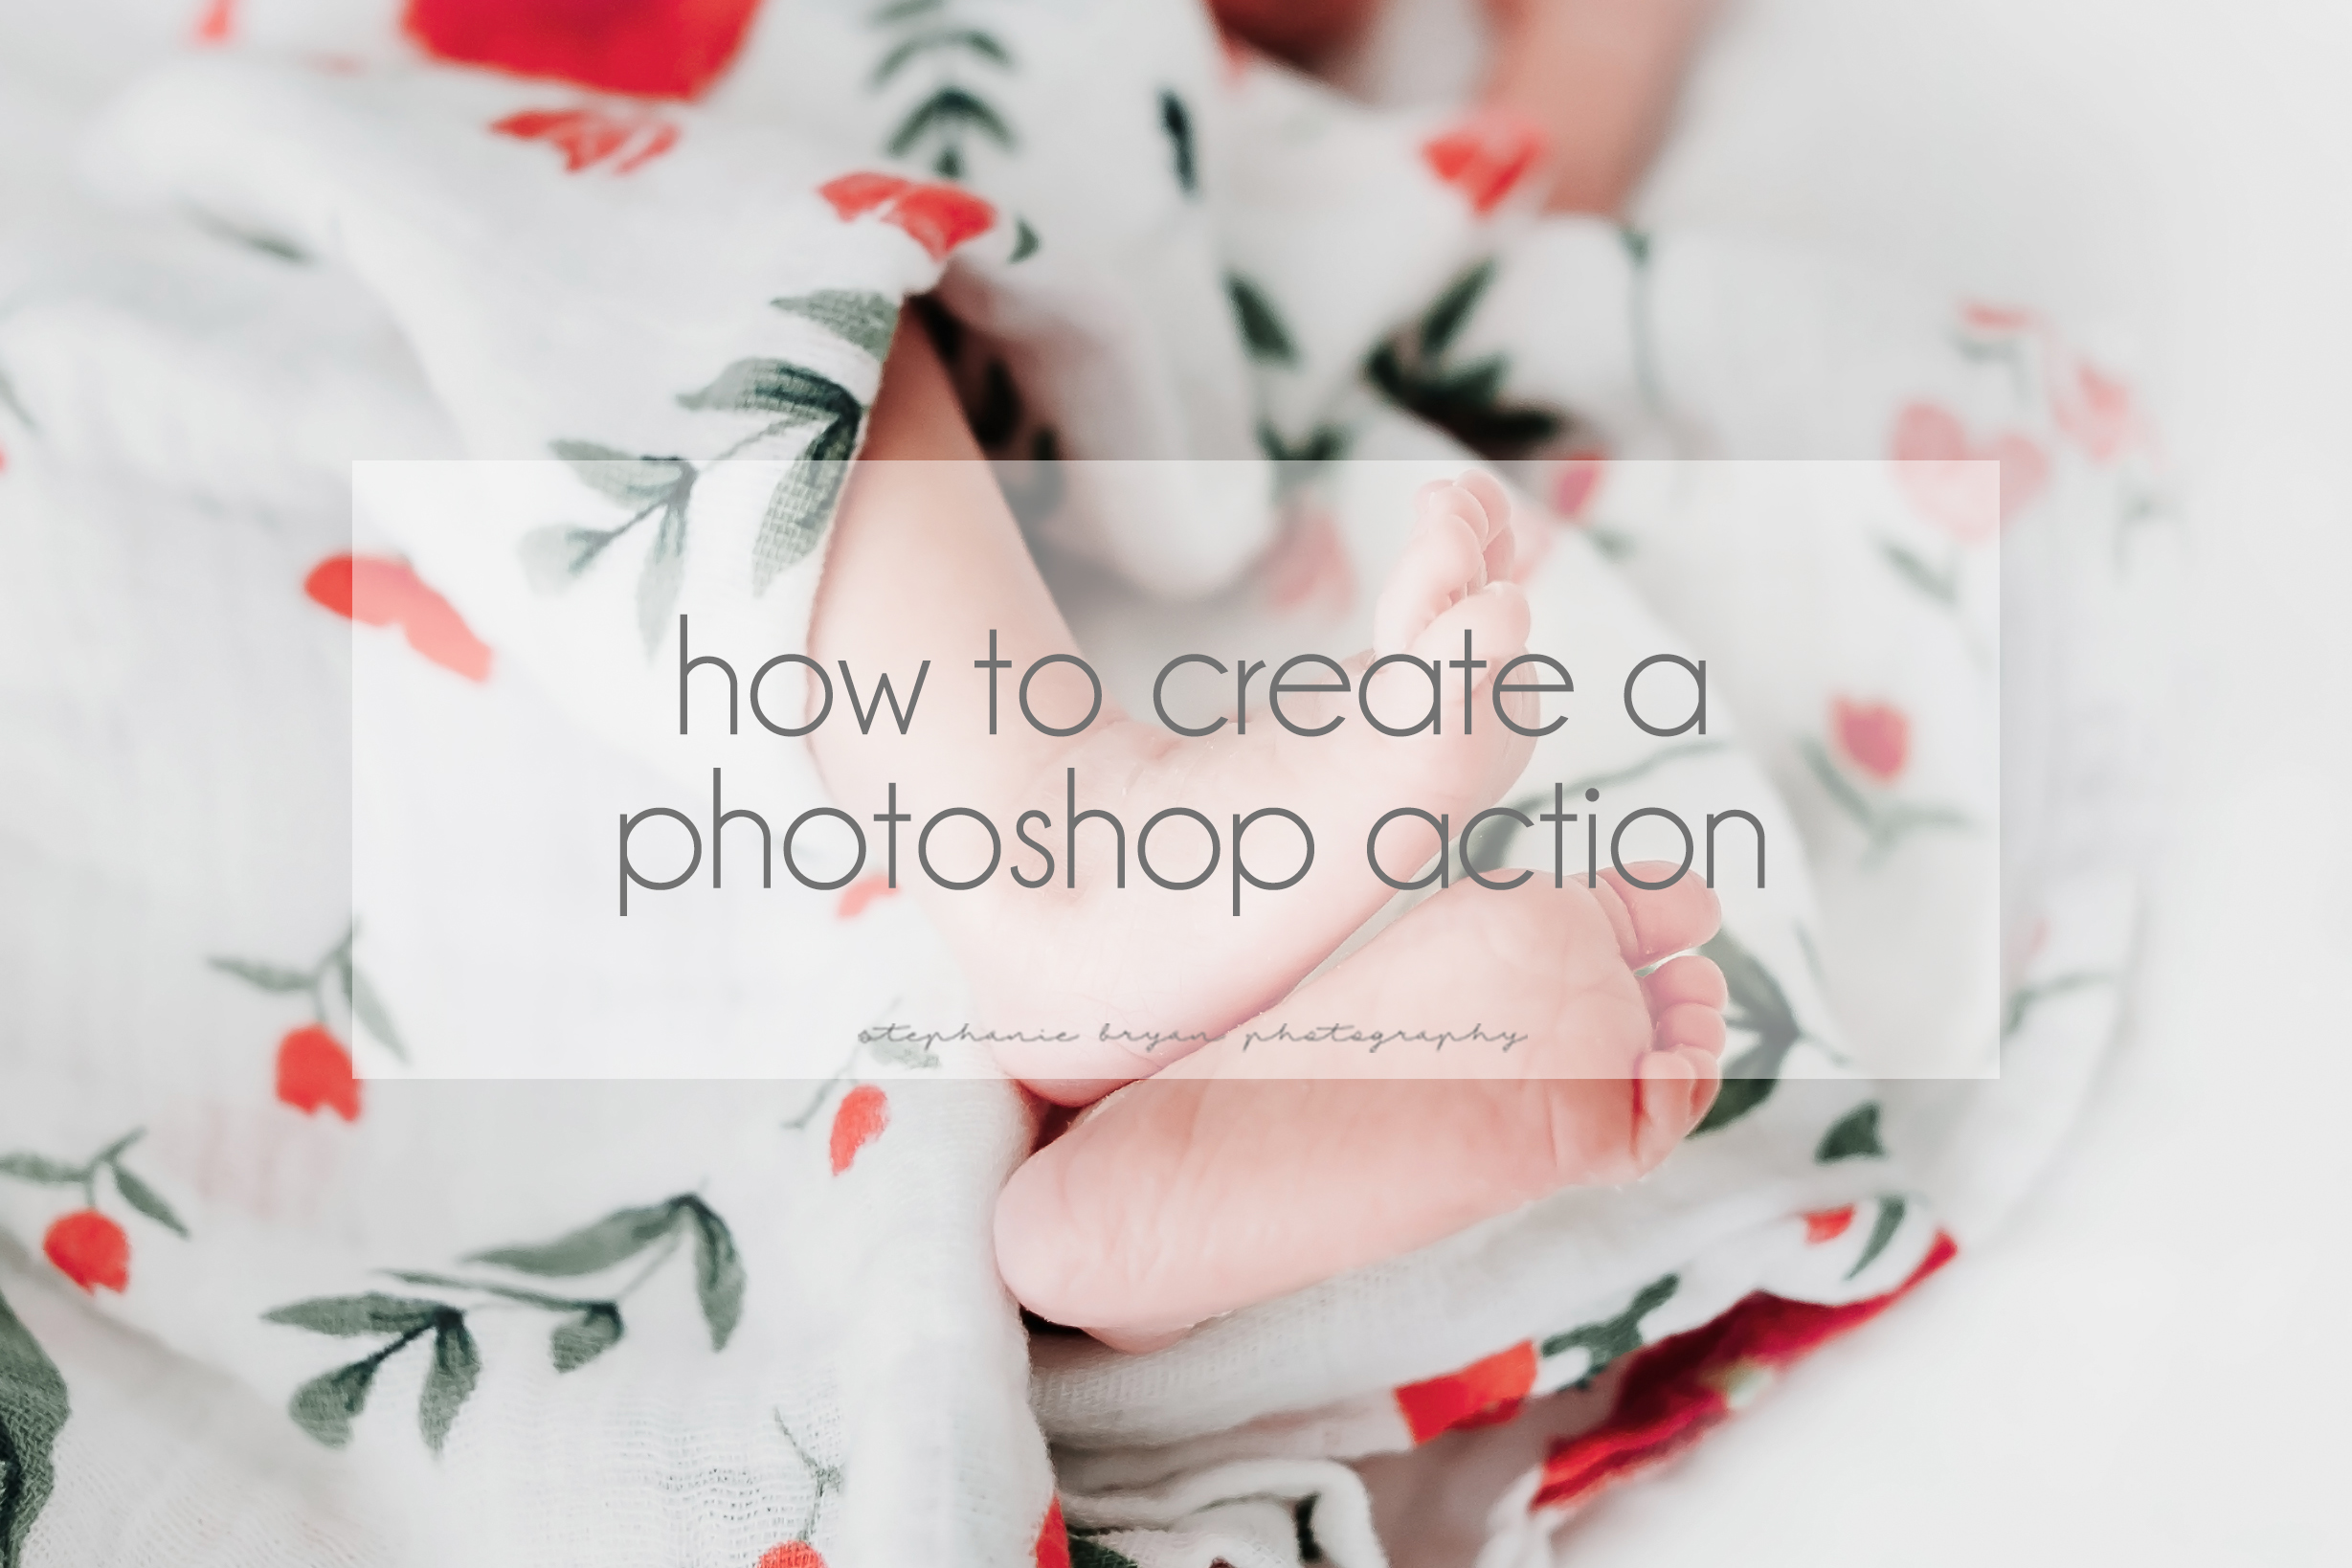 Stephanie Bryan Photography - How to create a photoshop action